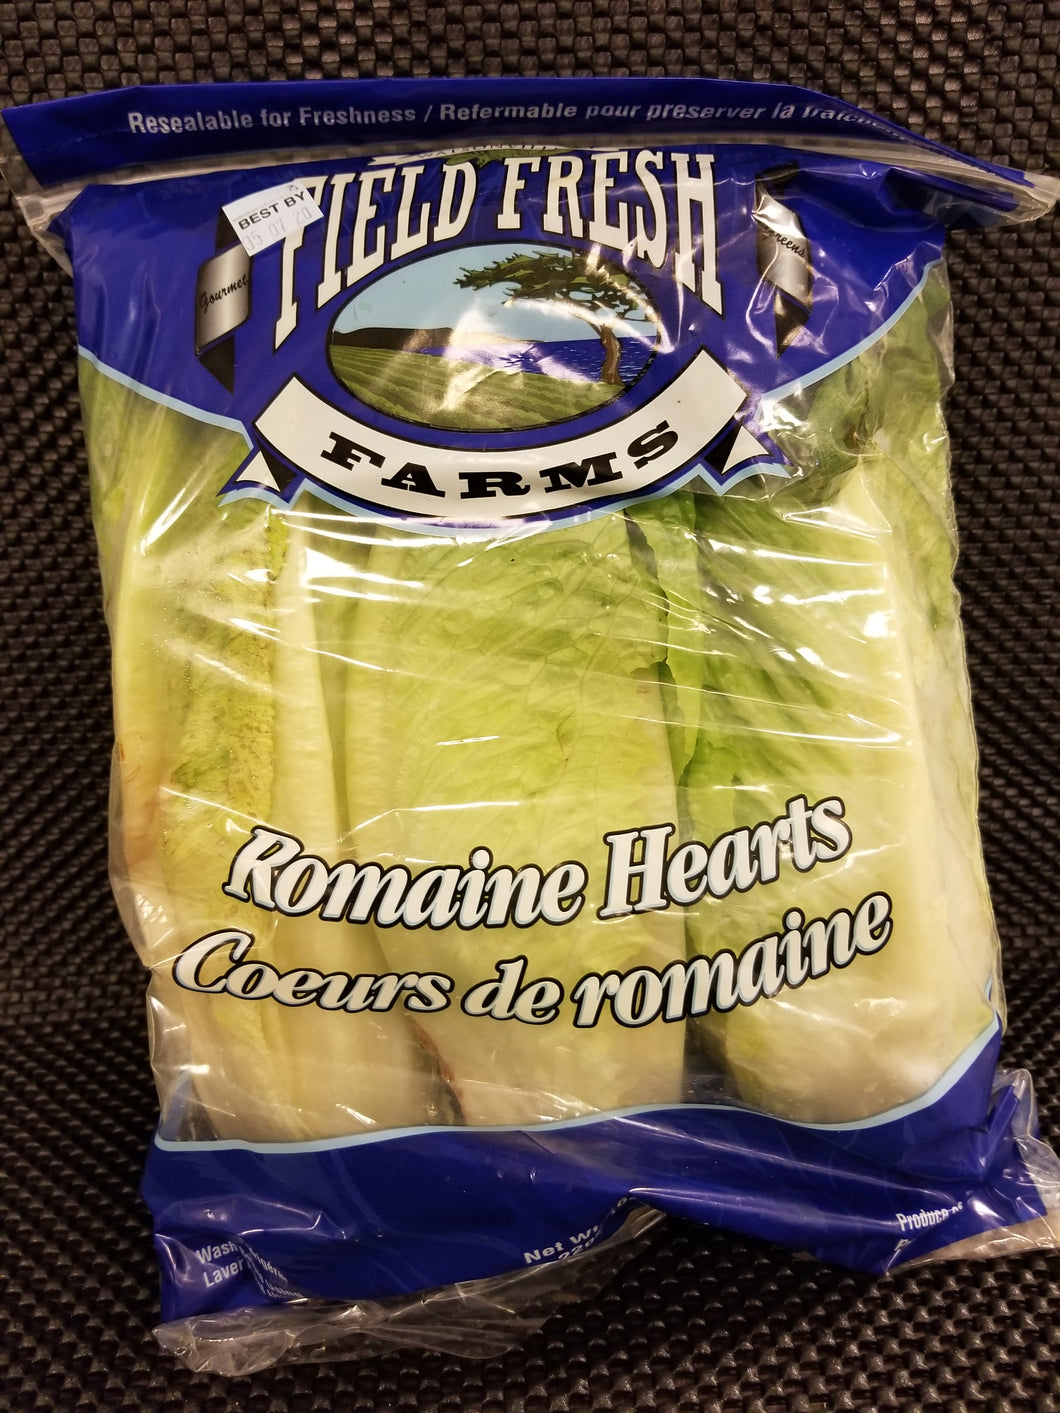 Lettuce, Romaine Hearts 3each Bag